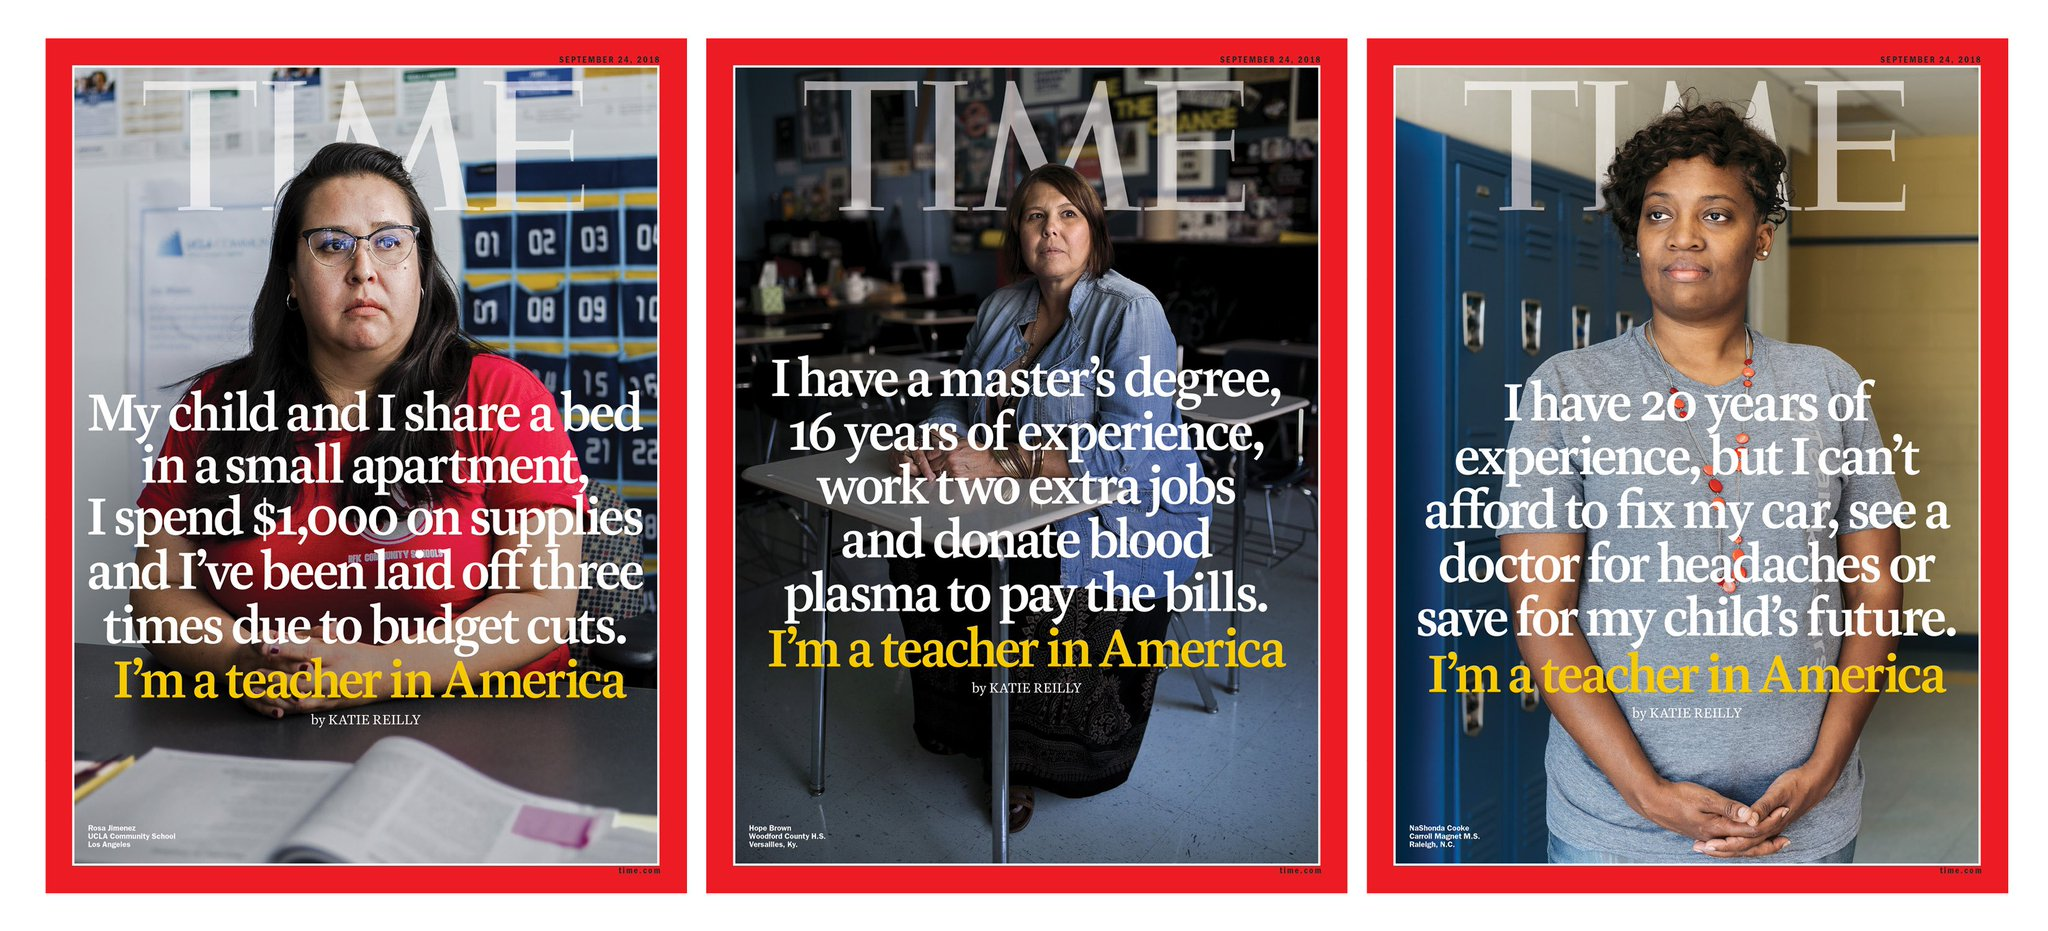 TIME's new cover: This is what it's like to be a teacher in America https://t.co/G9wP2iLGD6 https://t.co/RayMe3ieO0